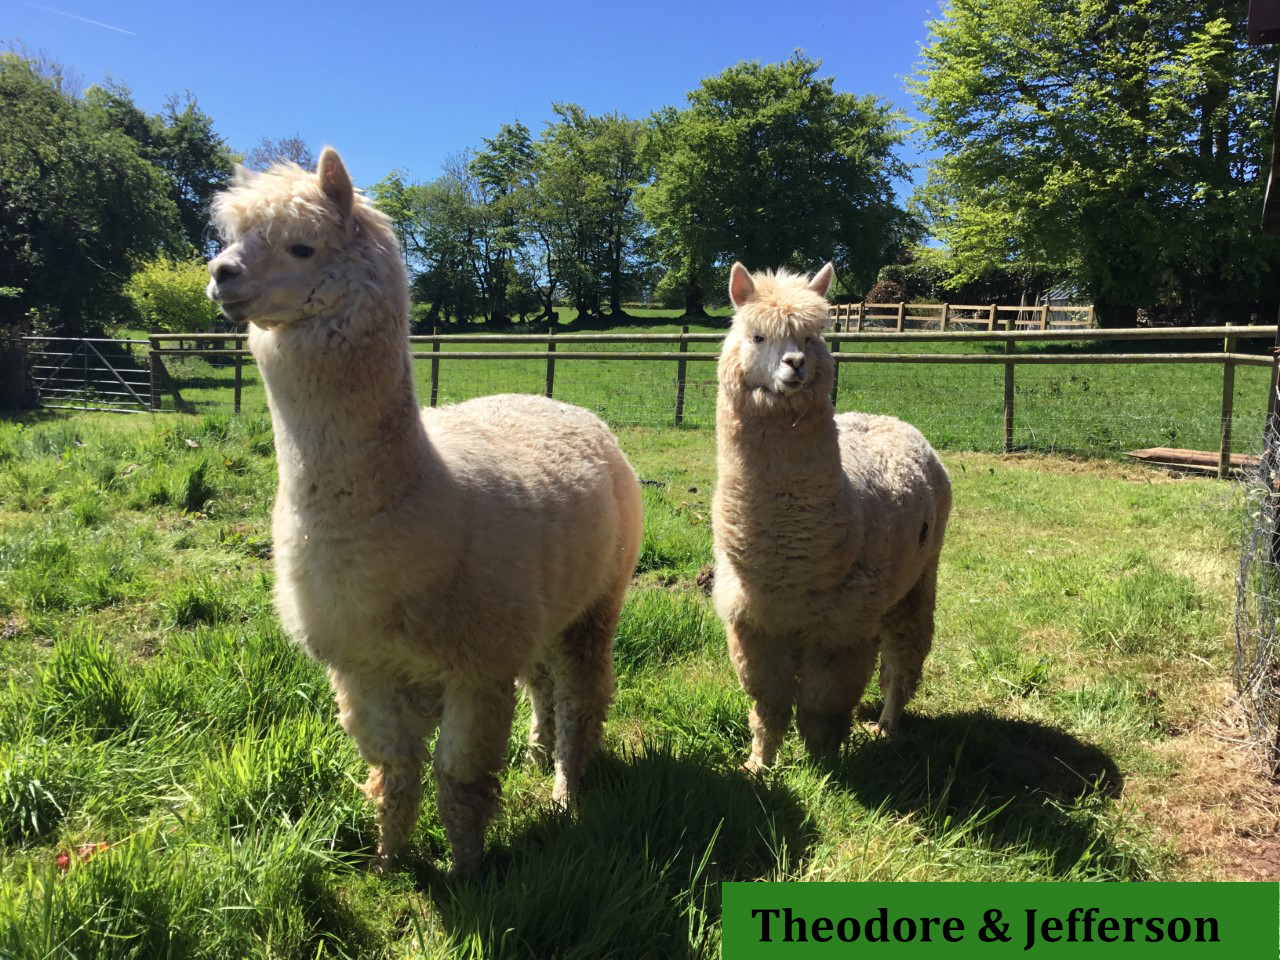 Theodore and Jefferson, the fun alpacas that live at Quoit-at-Cross bed and breakfast.